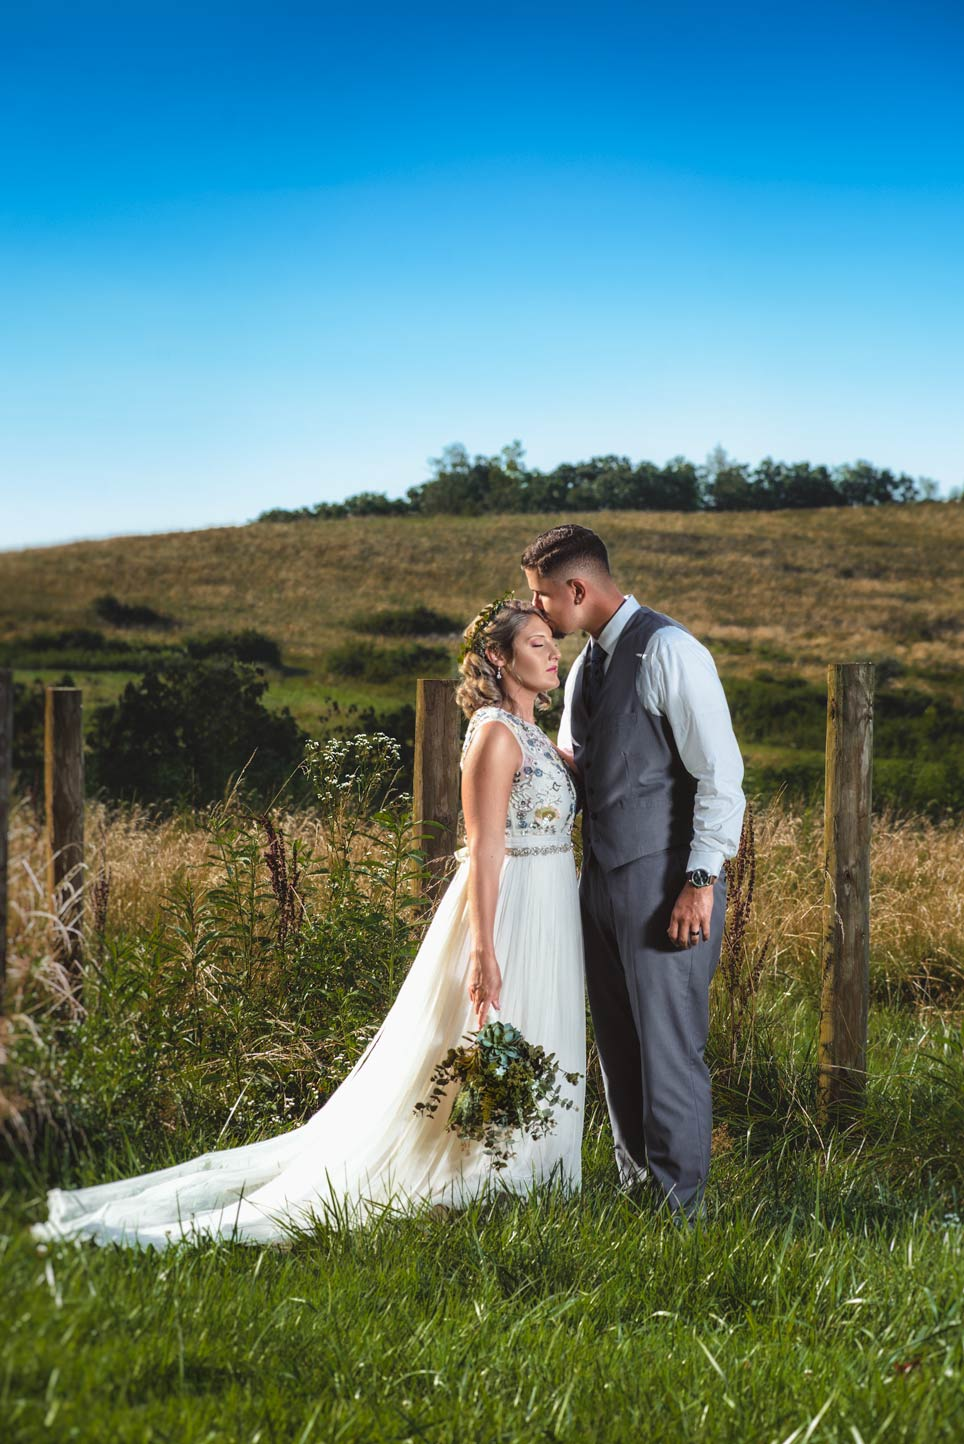 WV-Wedding-Portrait-photography-logan mace photography-fashion-best